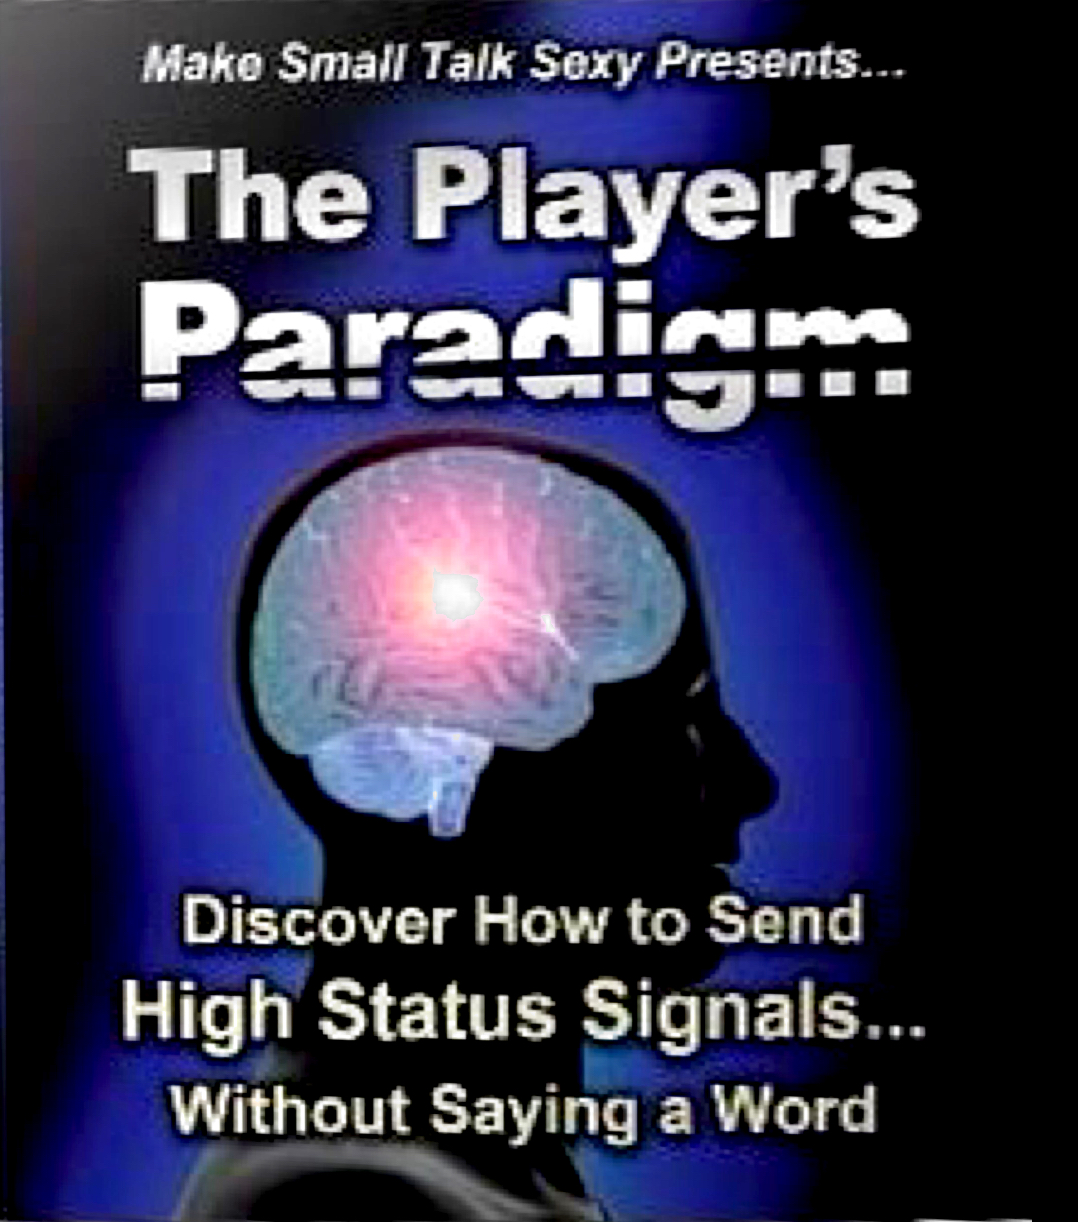 The Players Paradigm